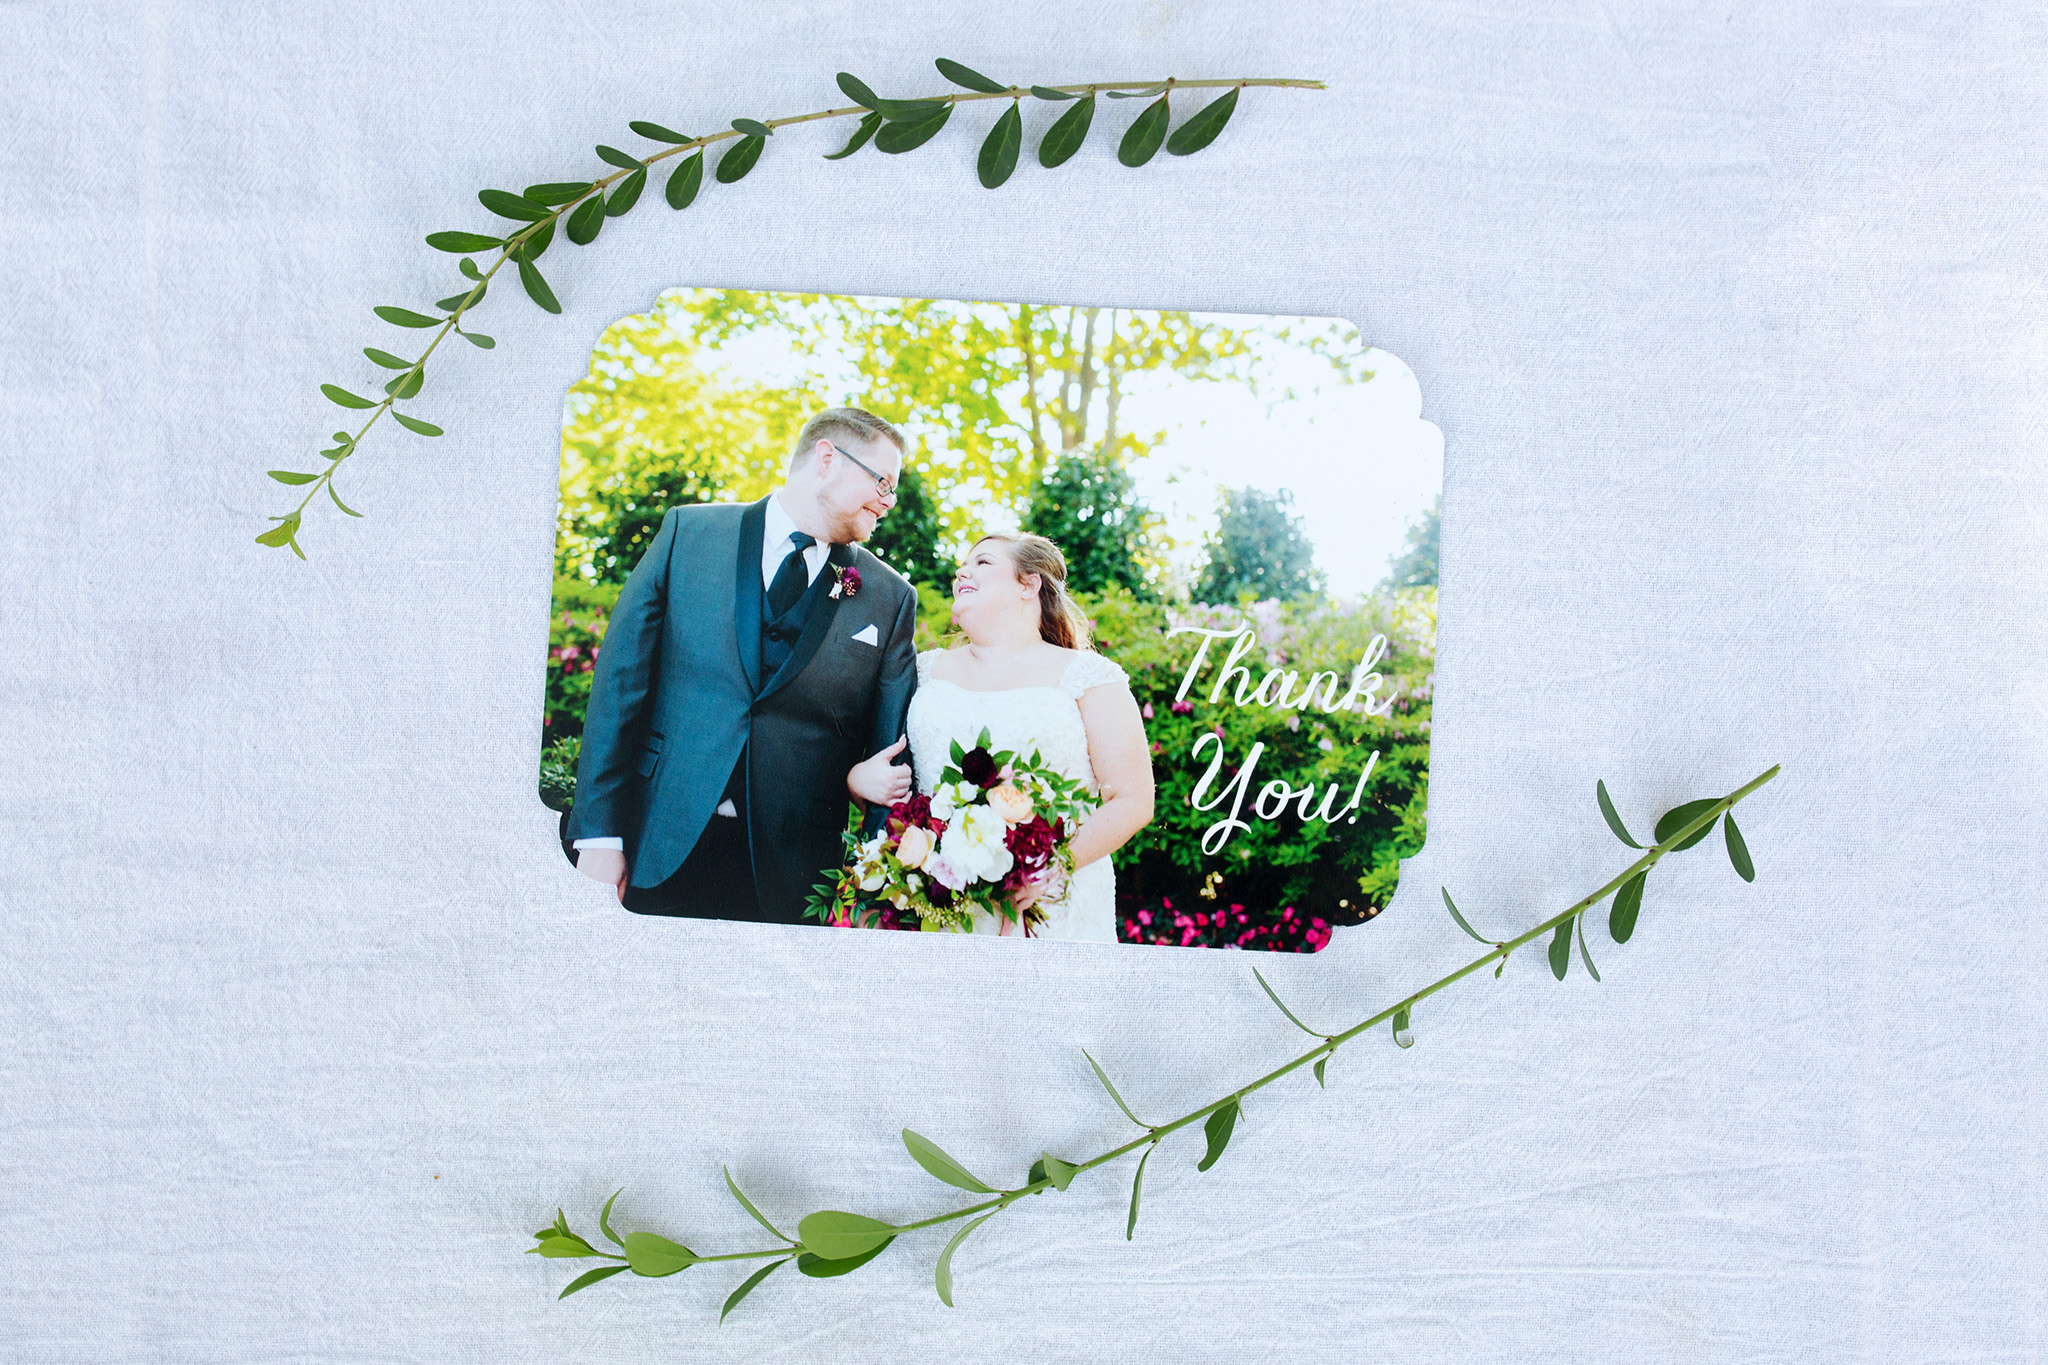 August 31: Nothing like a thank you note from a recent bride and groom to ease me back into work.